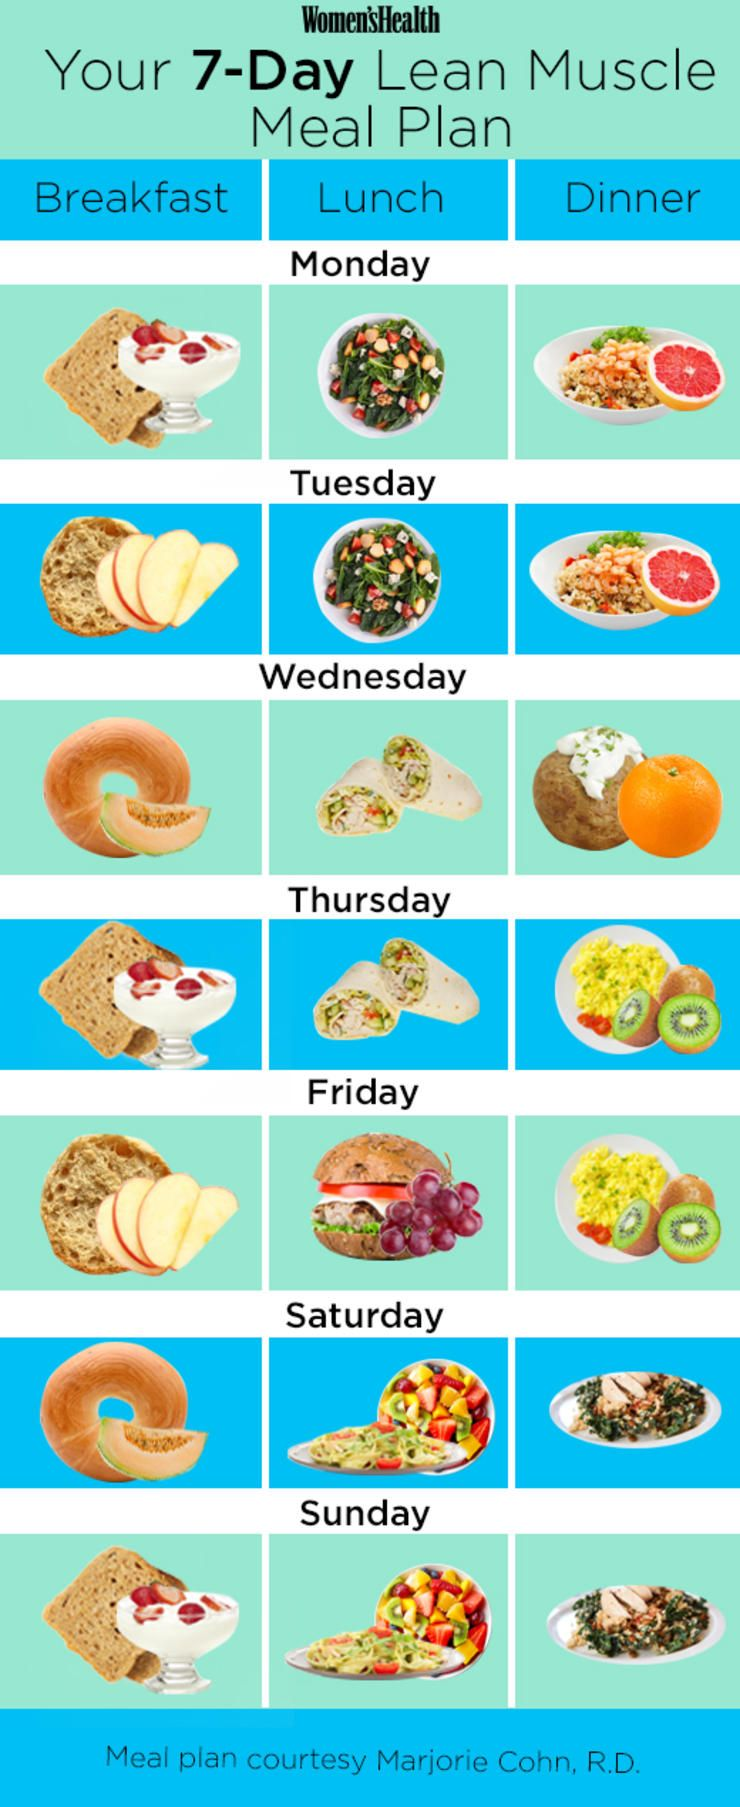 Pin on Eating Habits to Lose Weight Tips